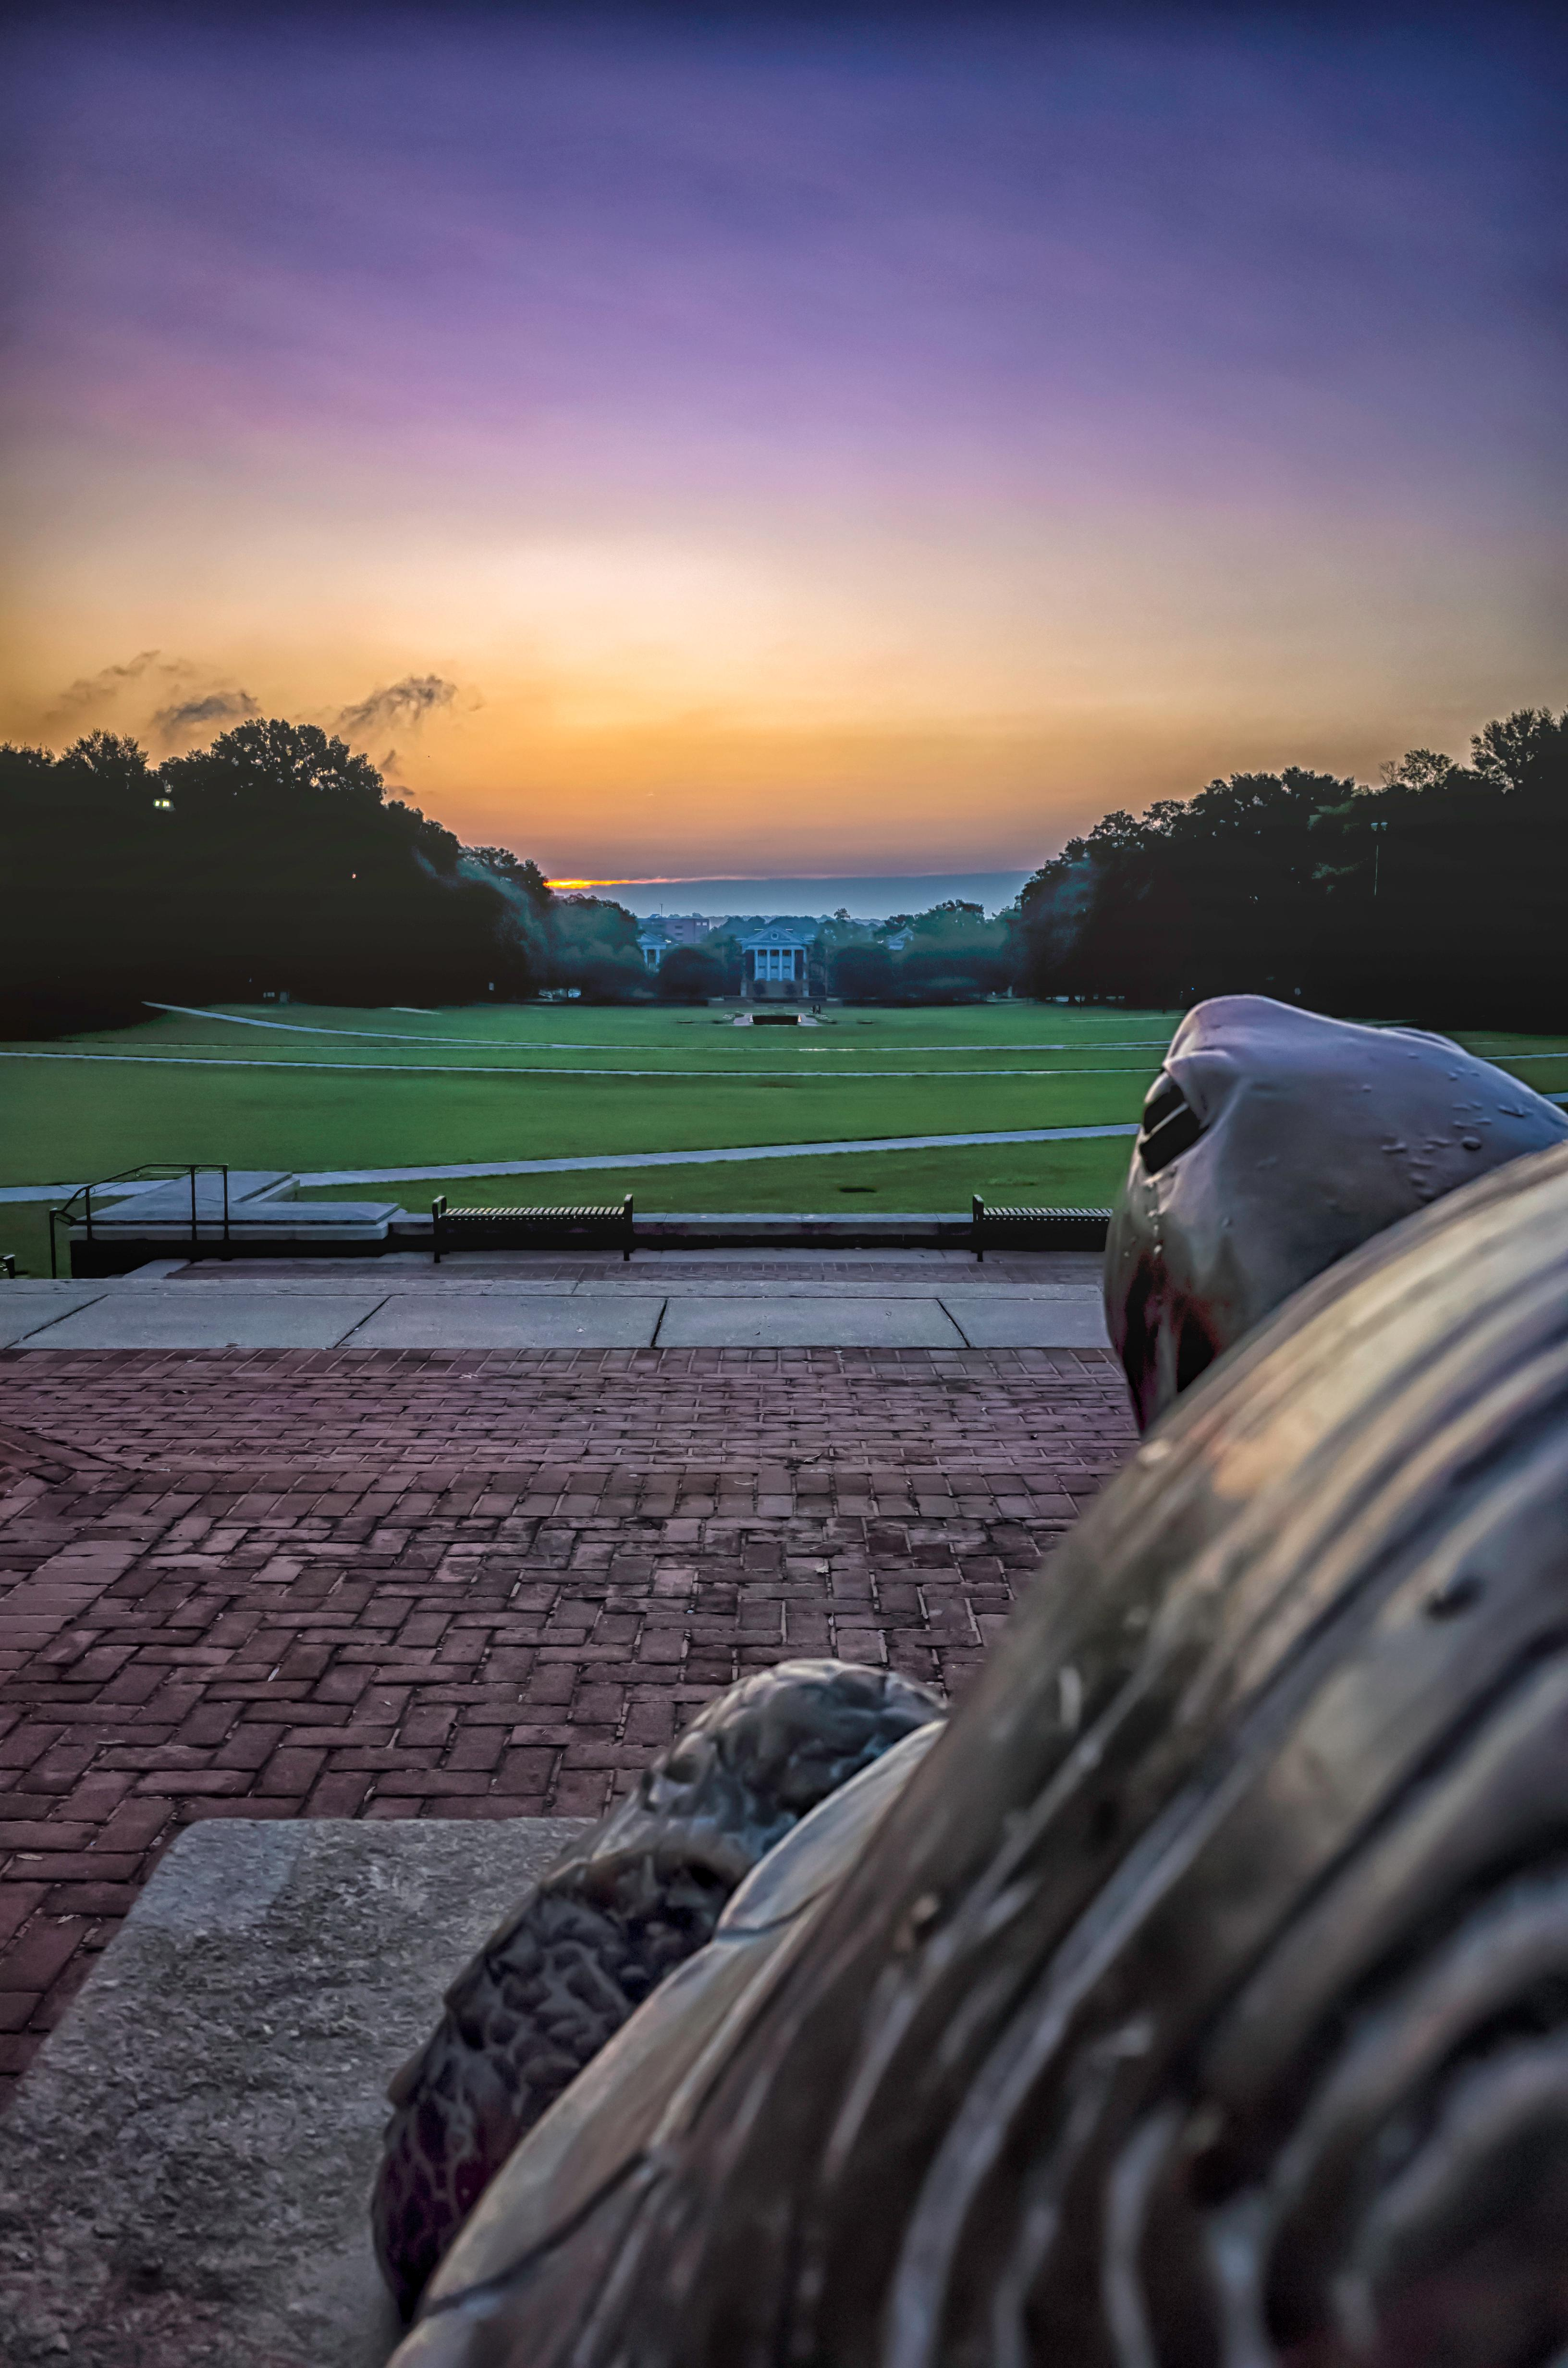 Testudo overlooking the mall at the University of Maryland, College Park. Taken on my way to work, September, 2017. (Image: Adam Brockett)